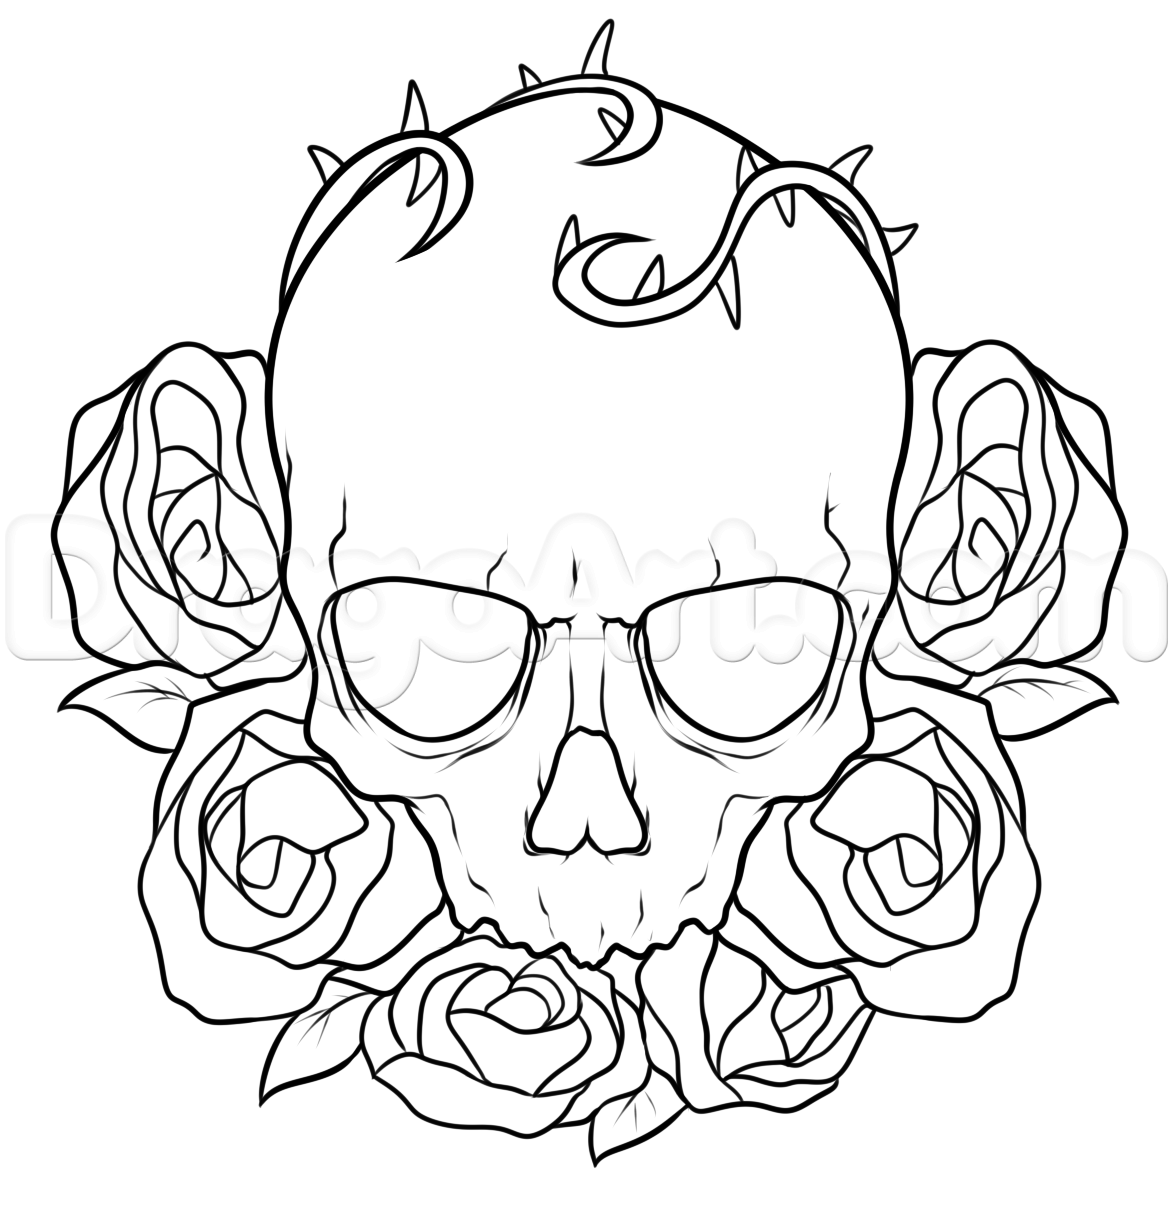 How To Draw A Skull And Roses Tattoo Step 7 Skulls Drawing Roses Drawing Skulls And Roses